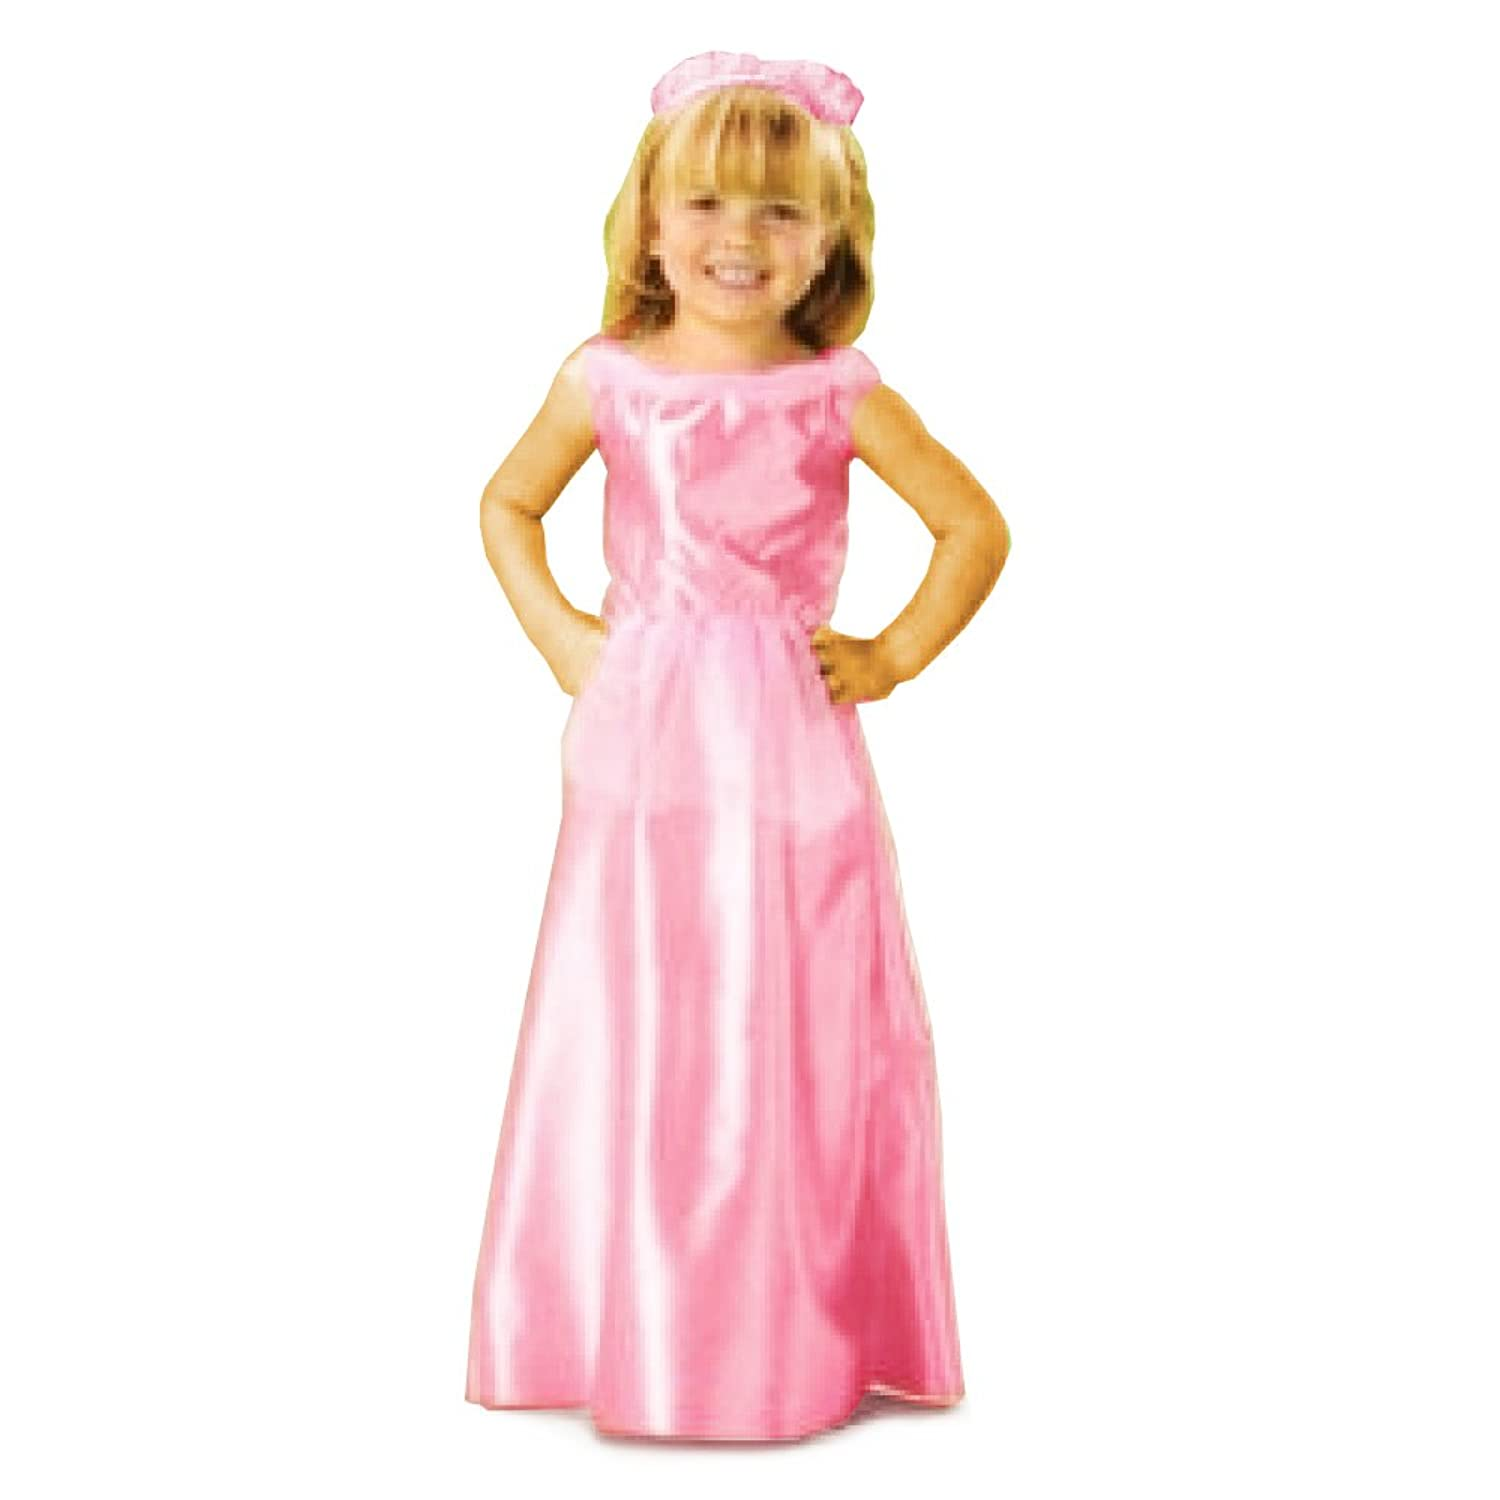 sc 1 st  Amazon.com & Amazon.com: Princess Costume Toddler Girl - Toddler 3-4T: Clothing